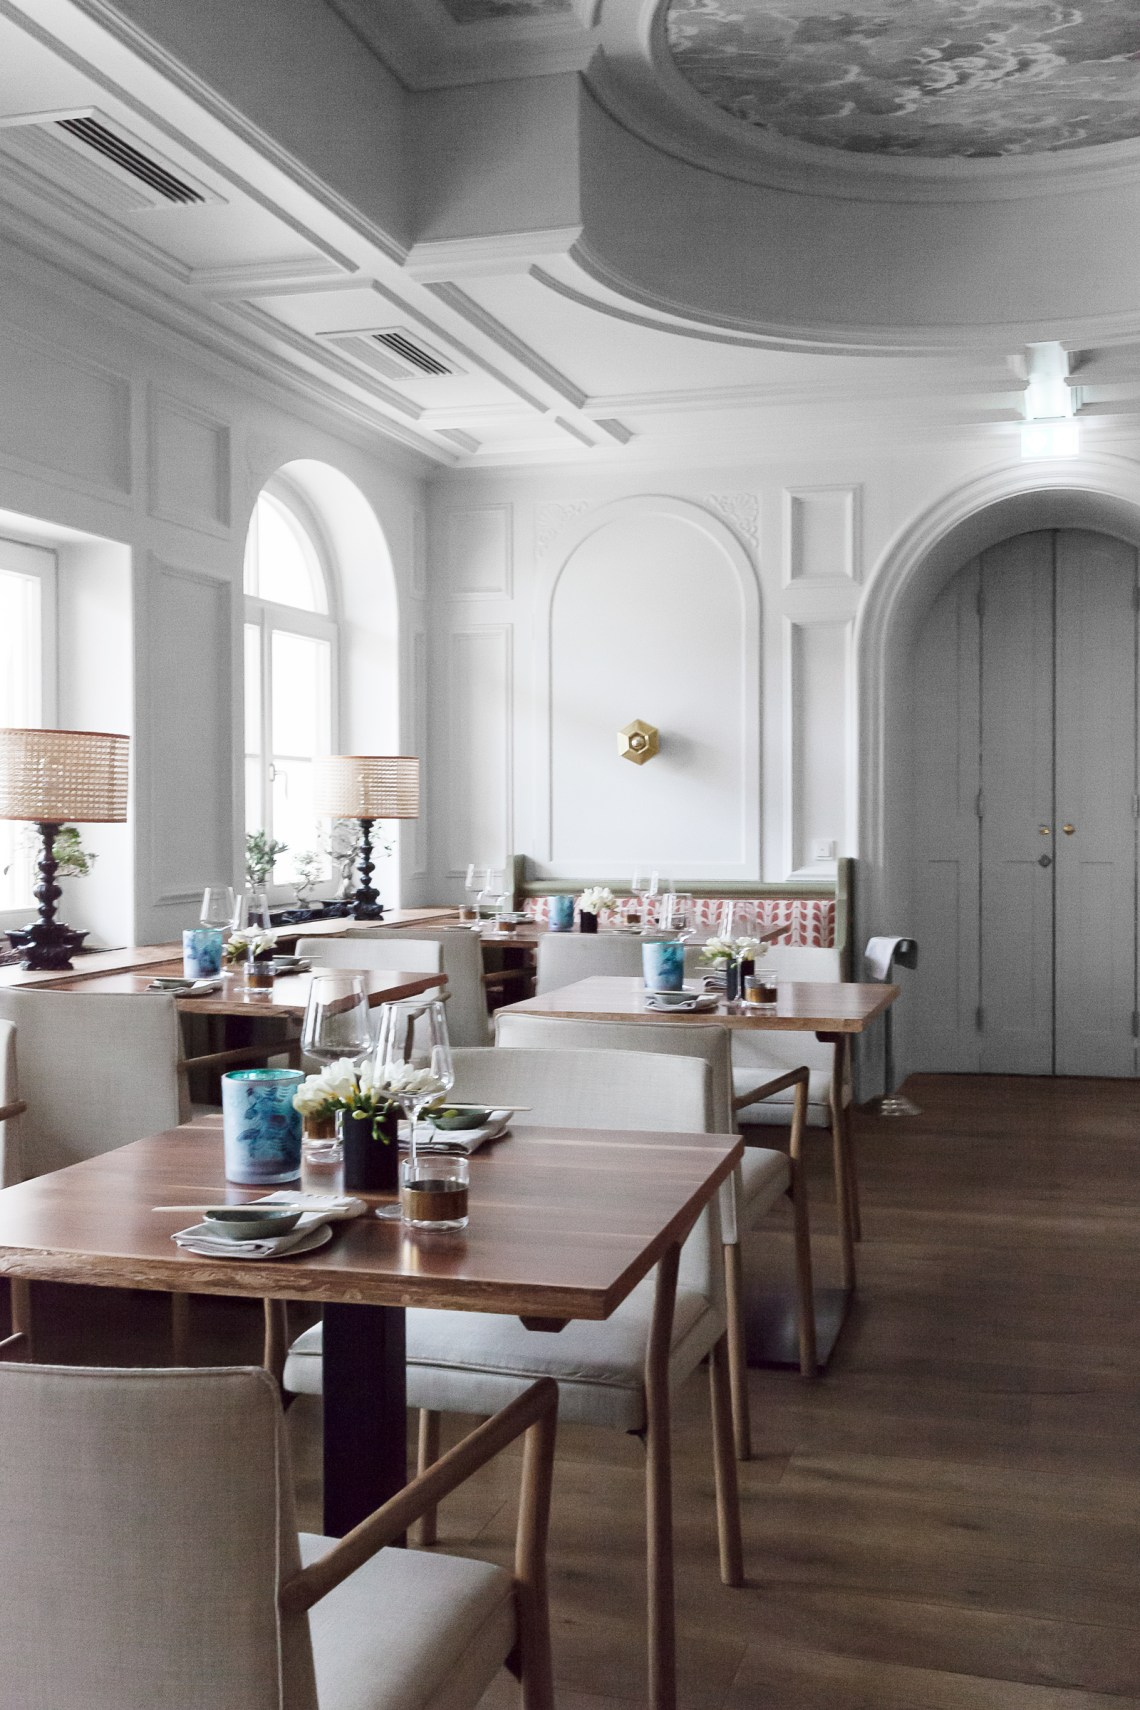 A relaxing weekend at Bachmair Weissach - via Coco Lapine Design blog